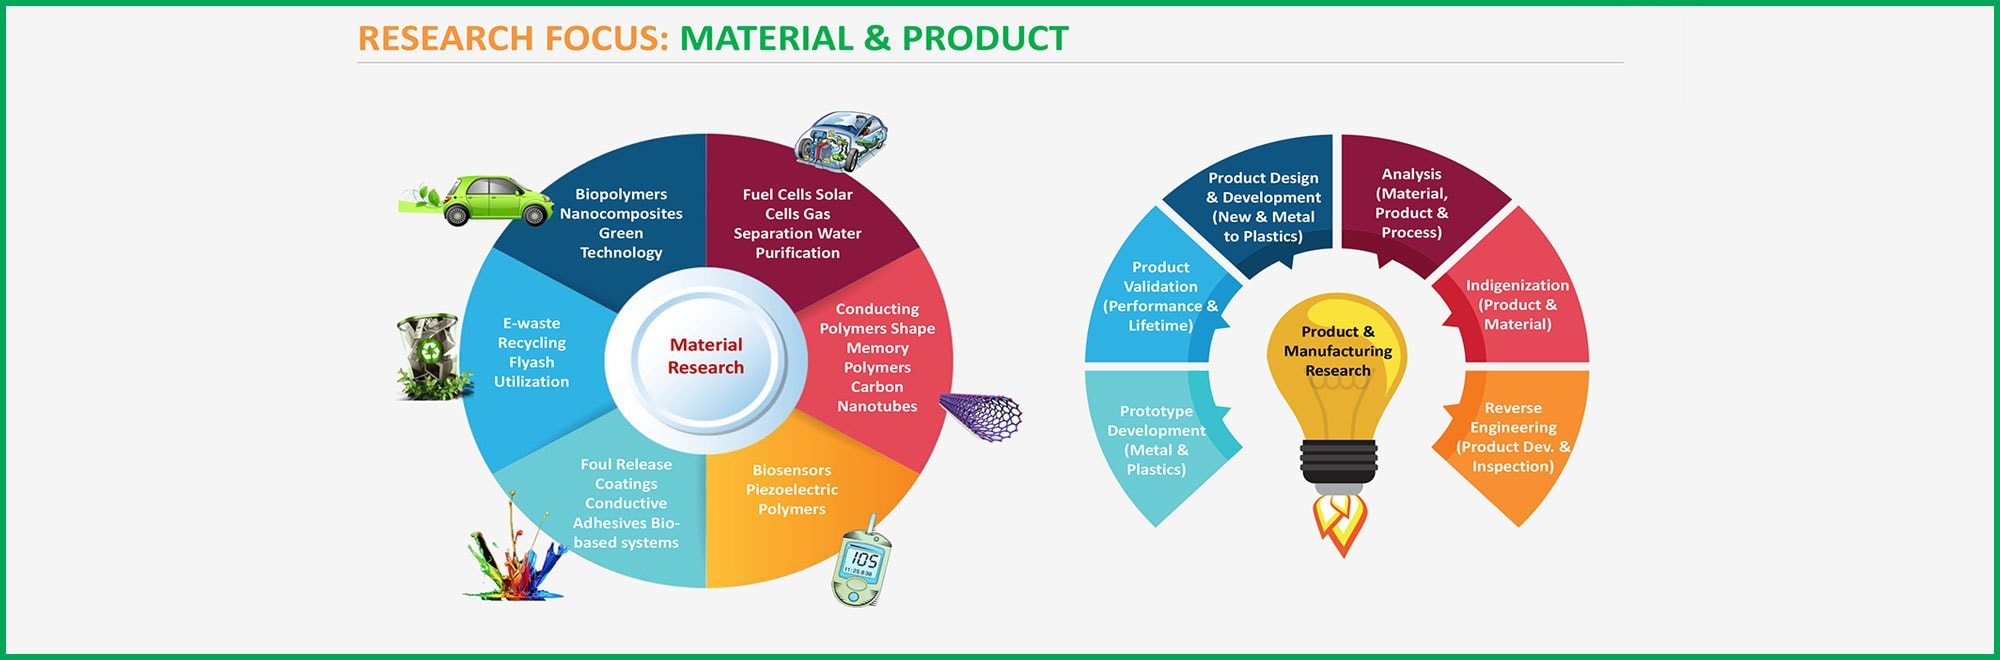 RESEARCH FOCUS: MATERIAL & PRODUCT